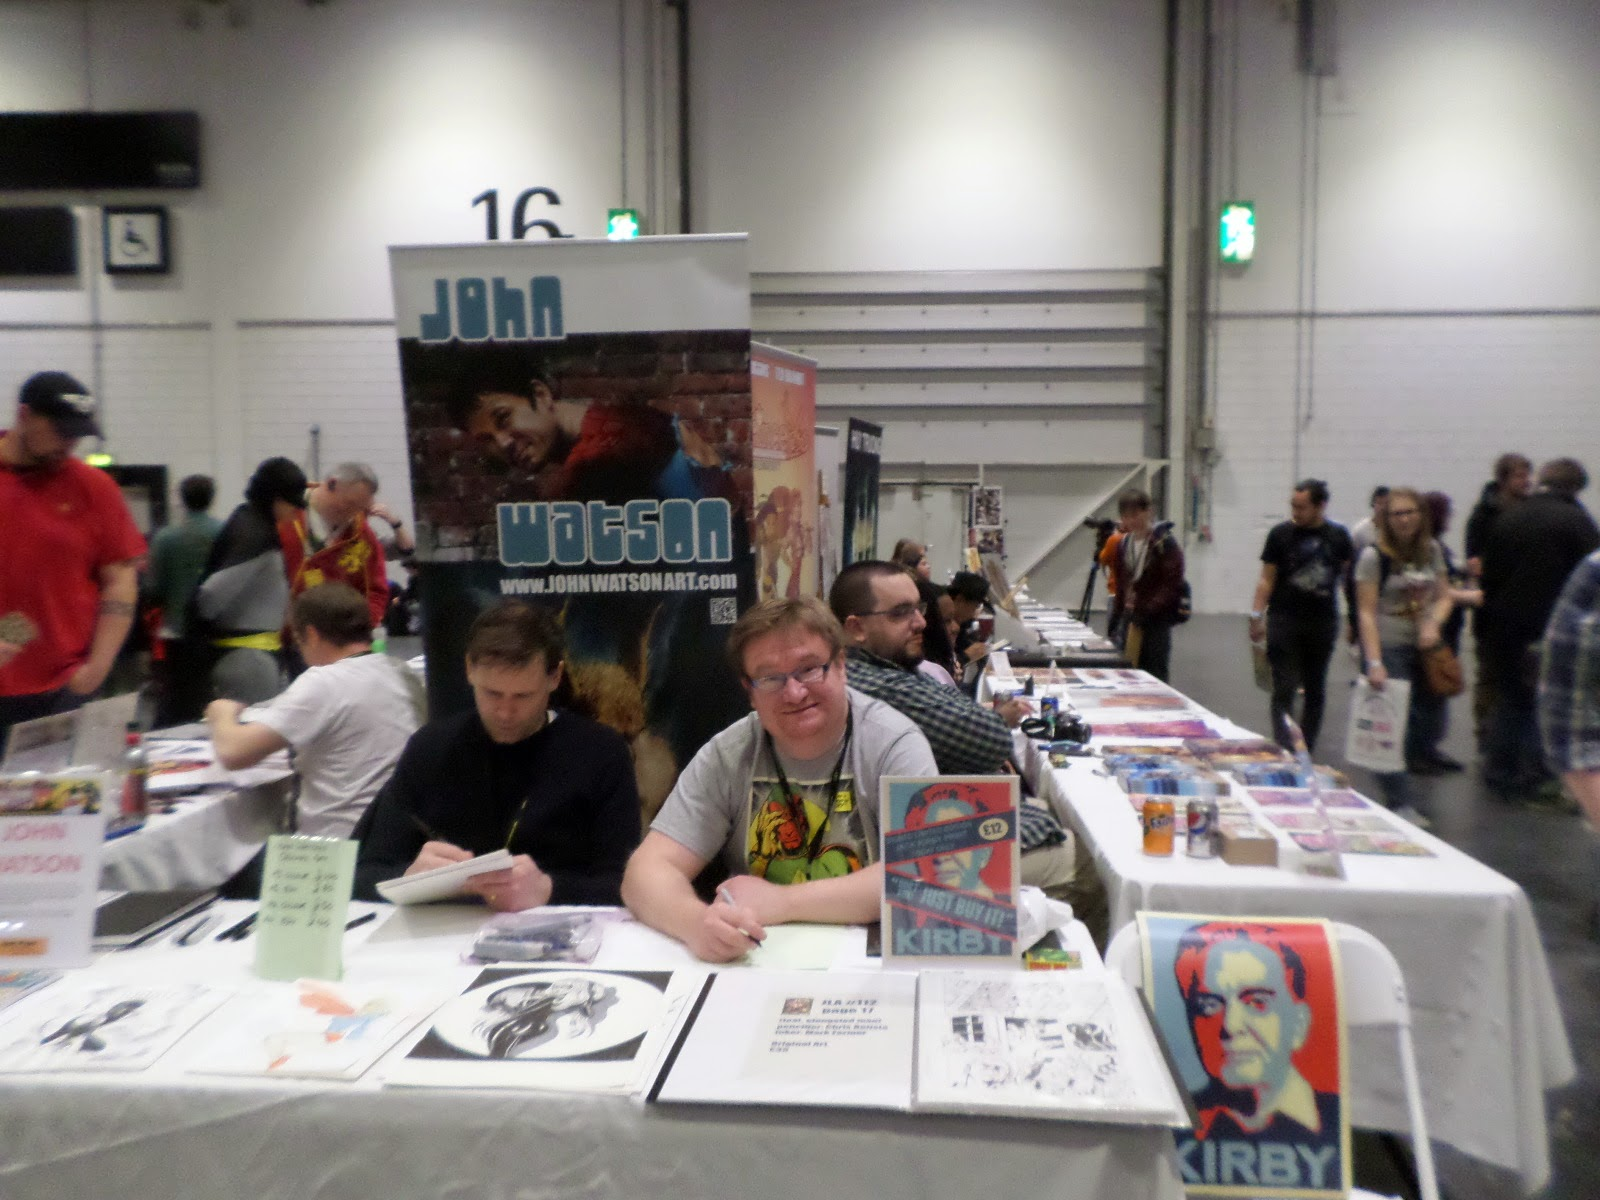 John Watson and Russell Payne at LSCC 2015